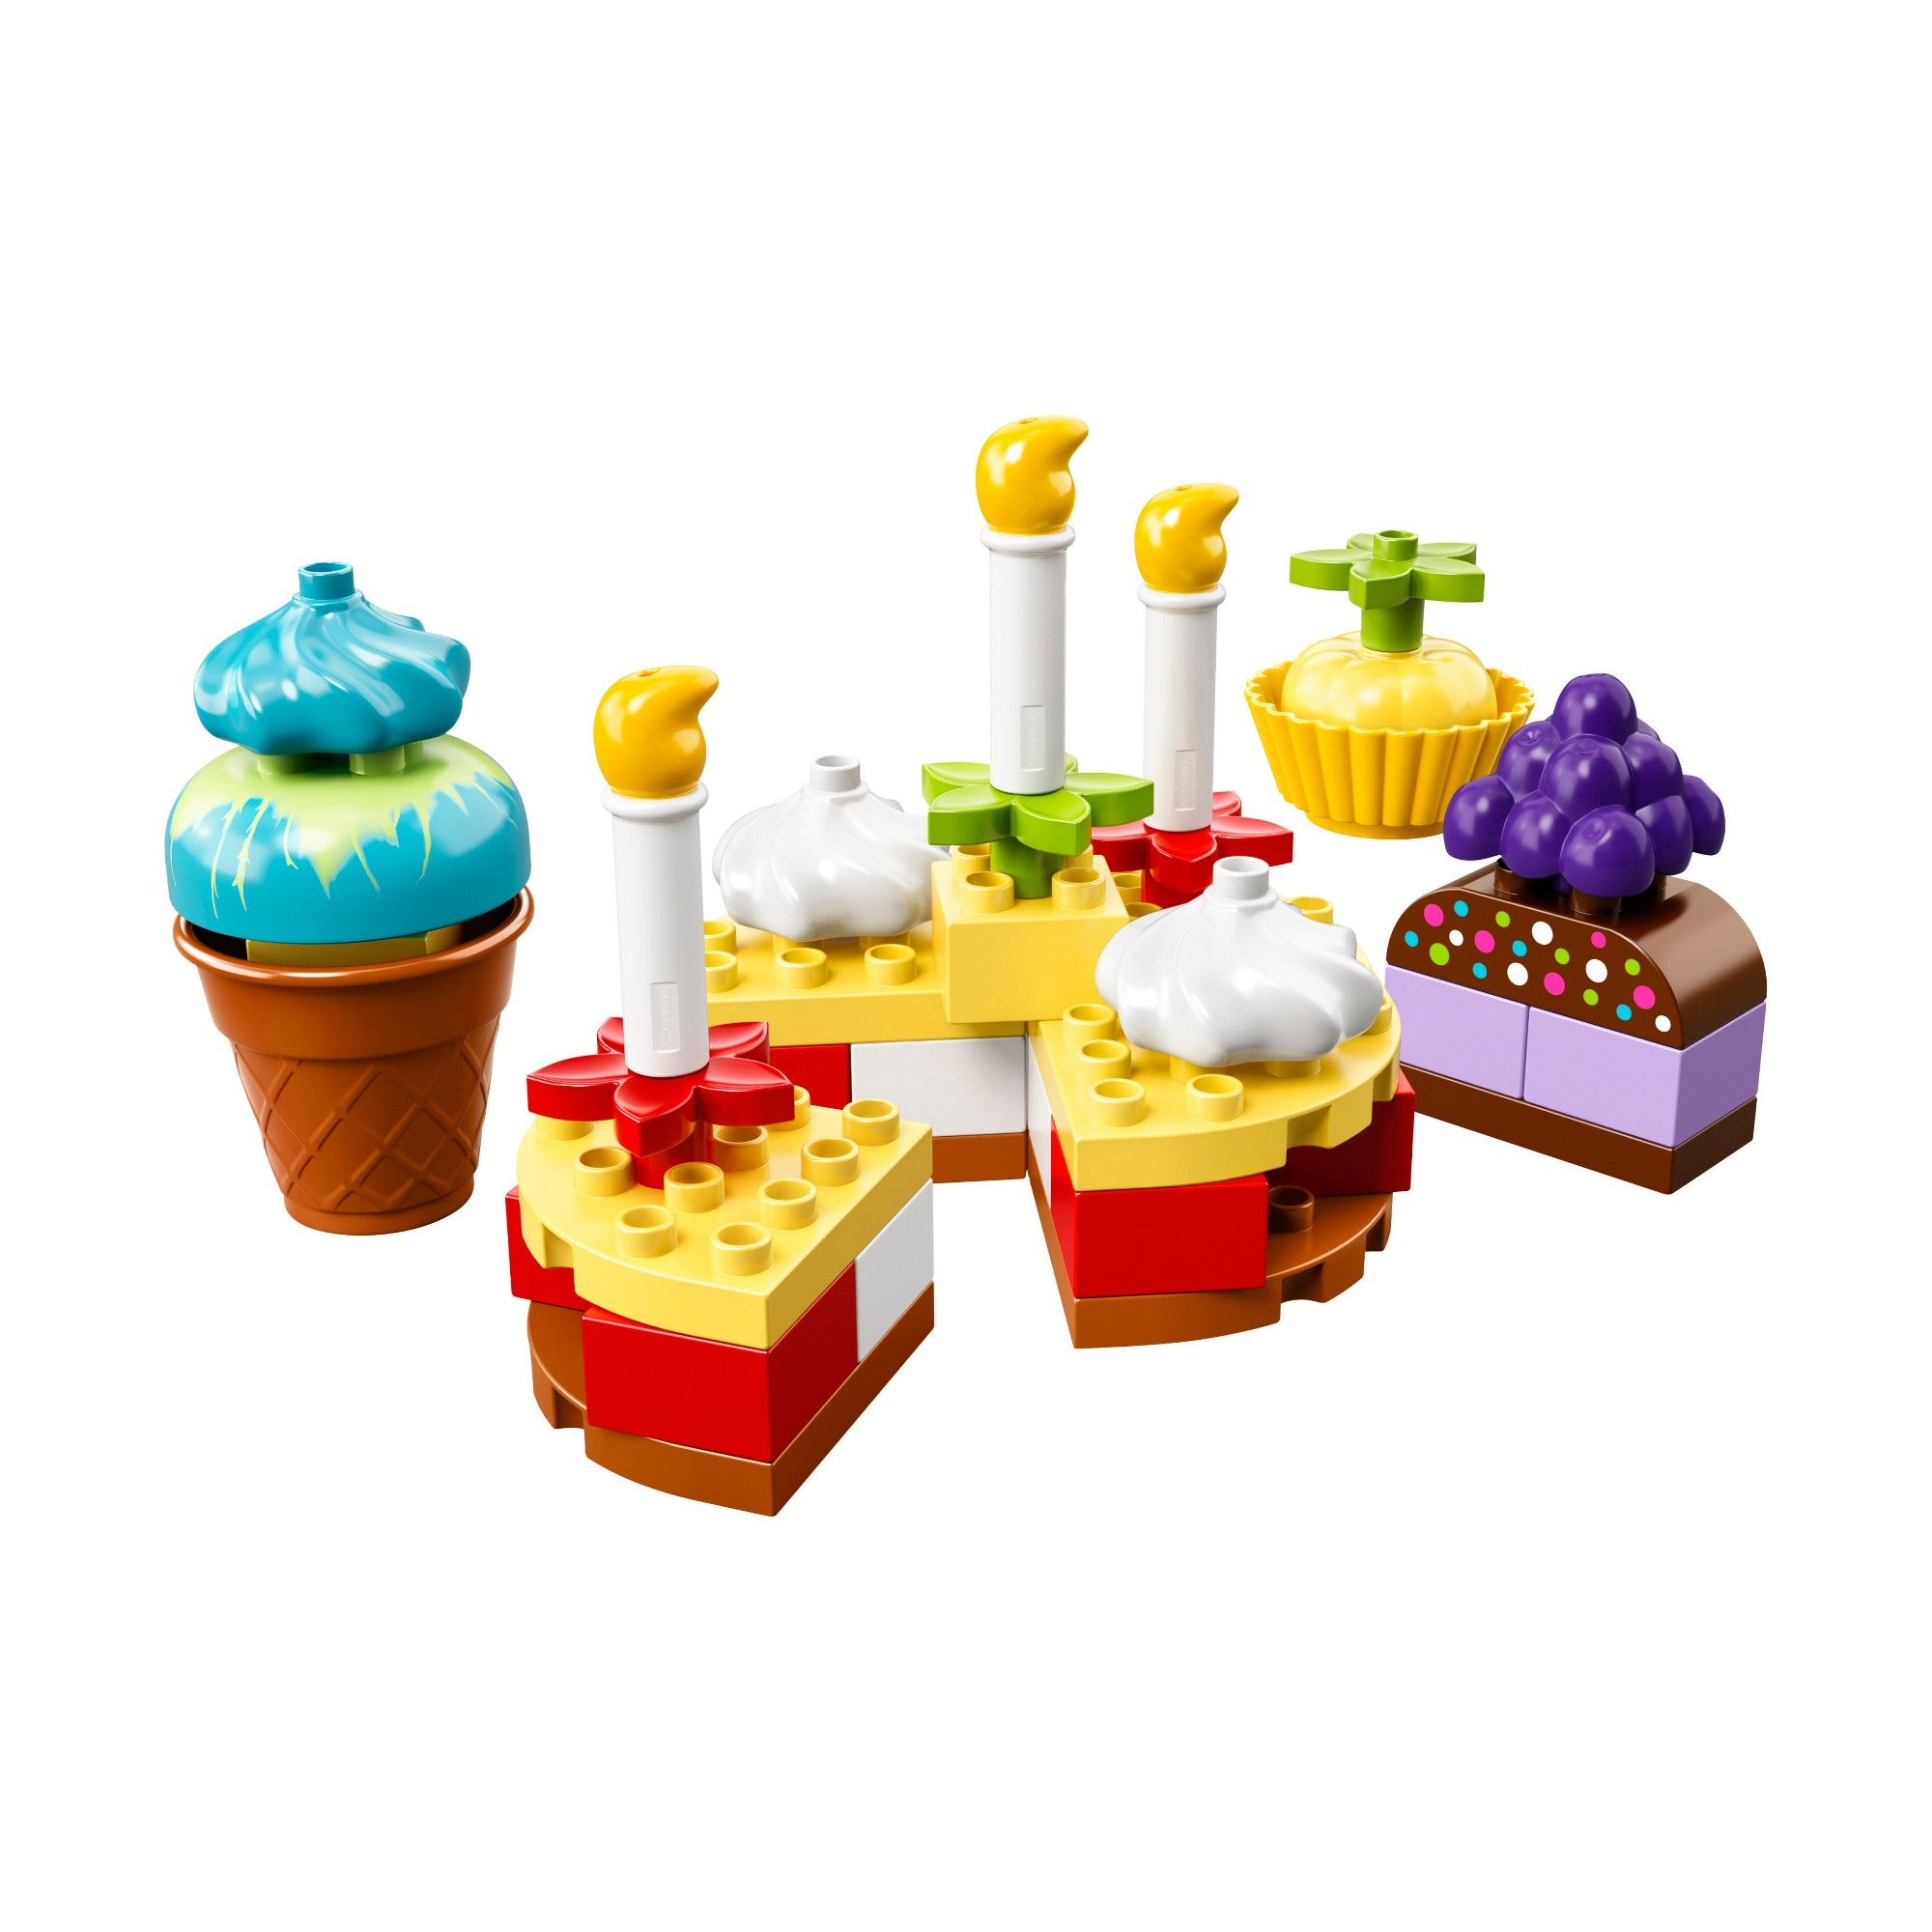 Lego My First My First Celebration Products Pinterest